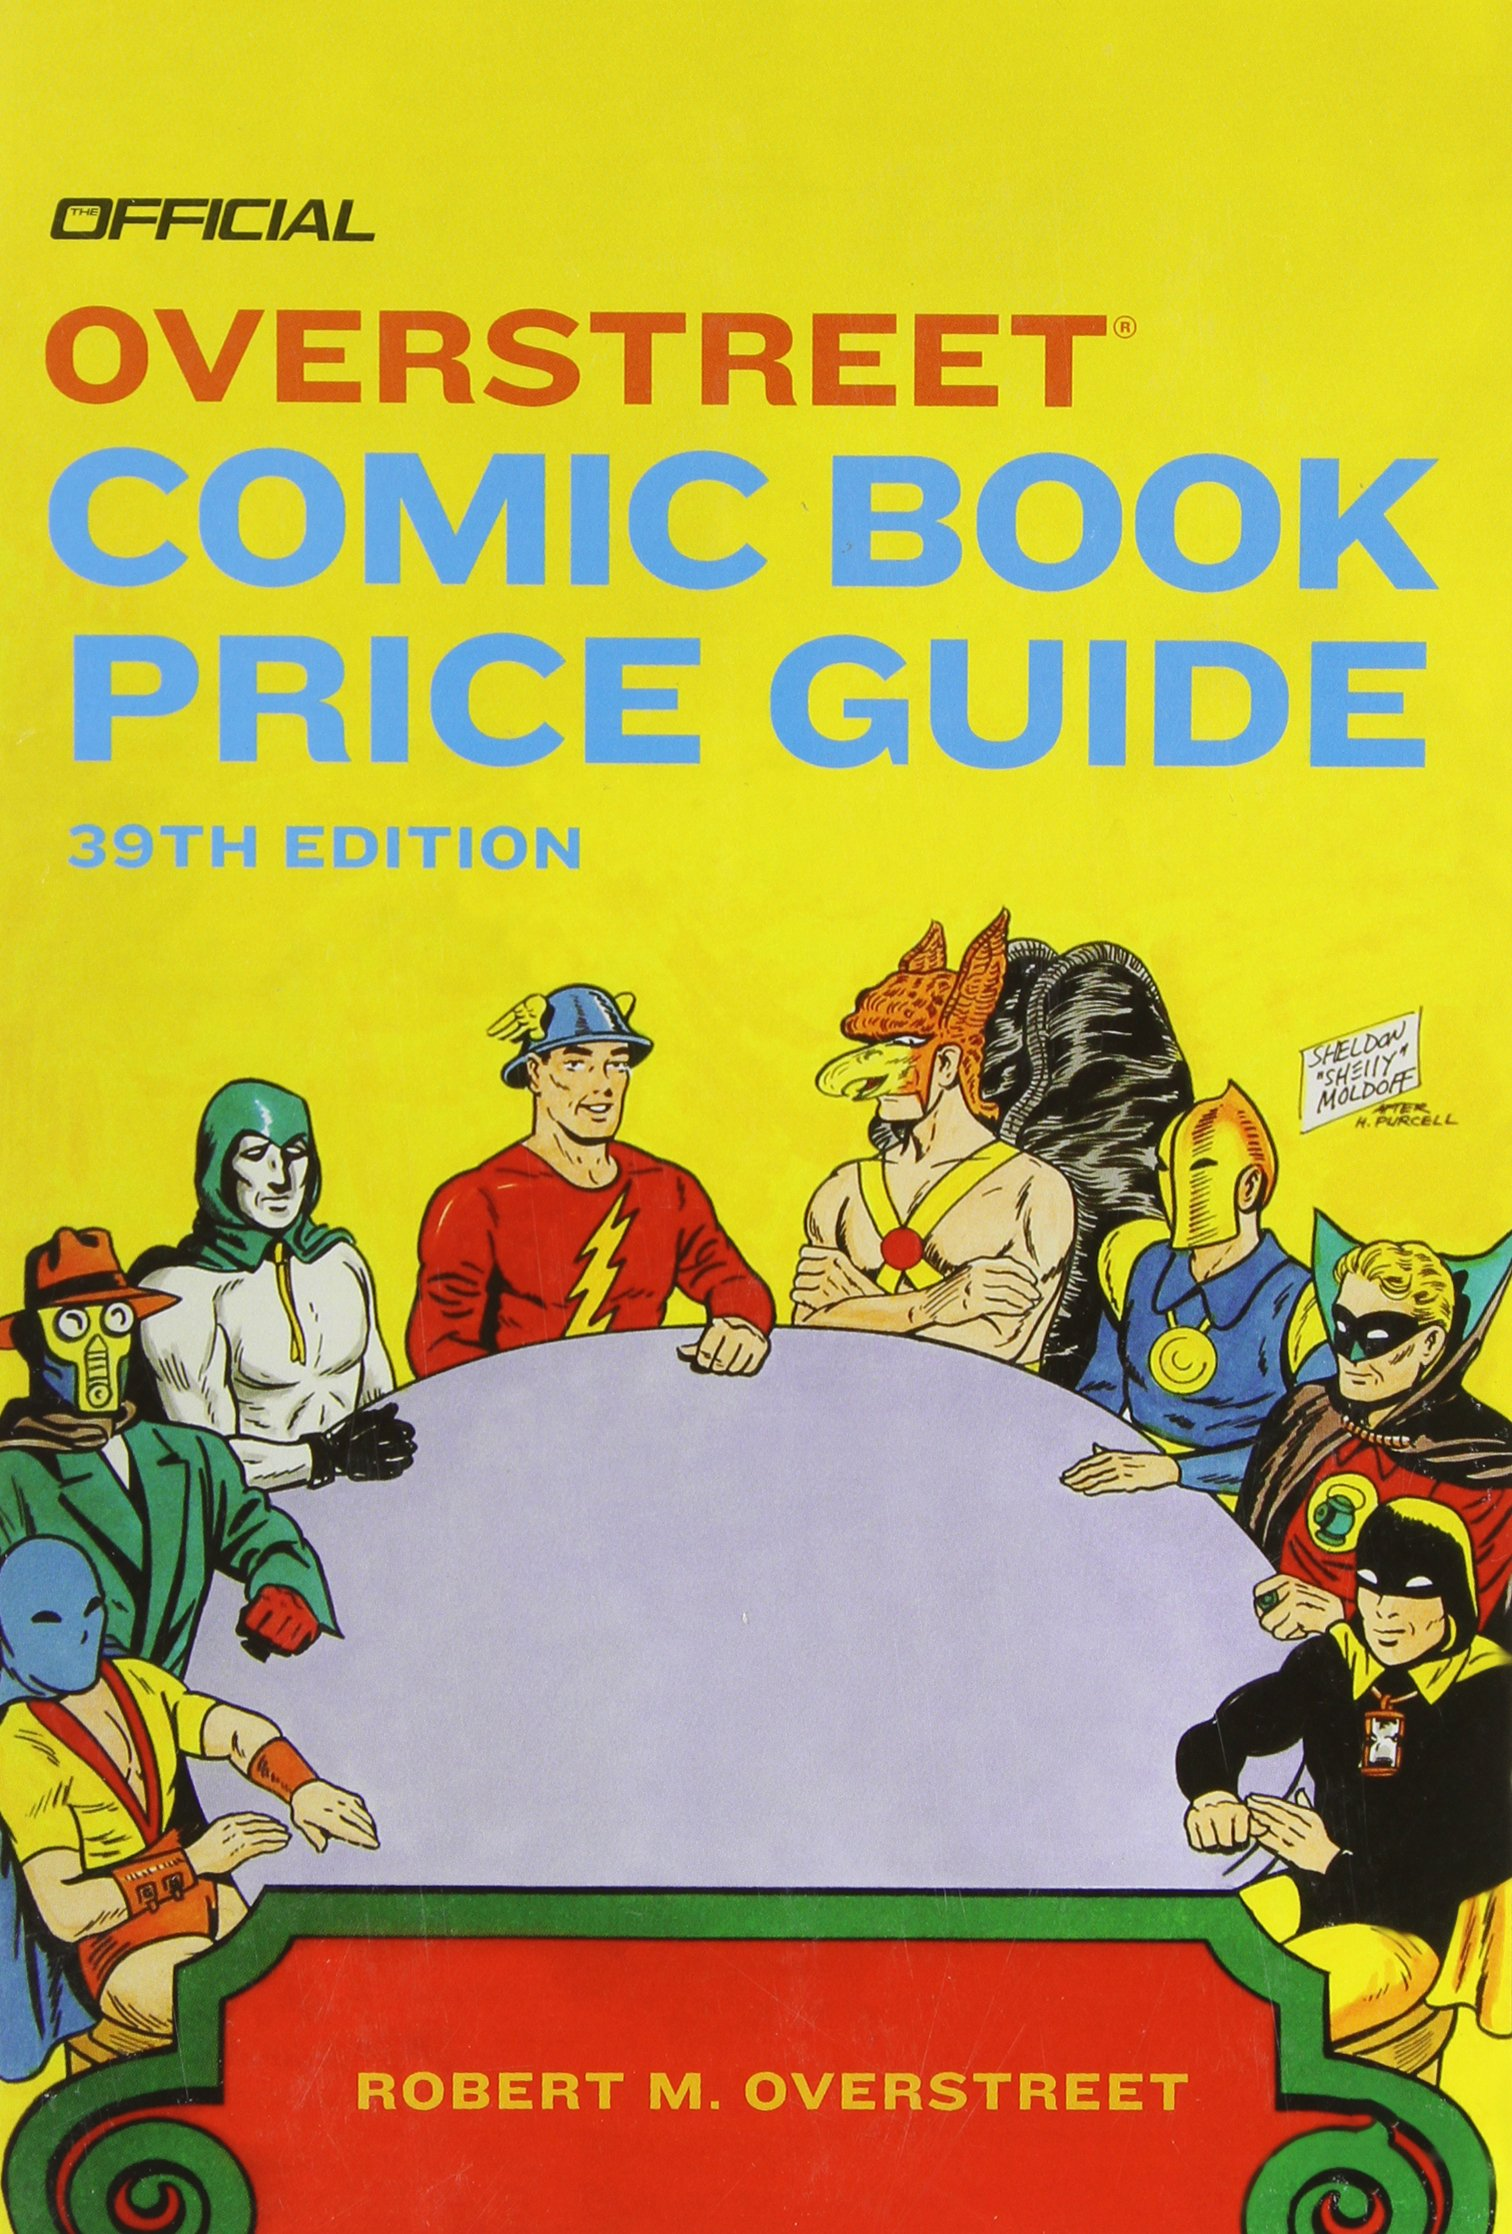 The Official Overstreet Comic Book Price Guide, 39th Edition: Robert M  Overstreet: Amazon.com: Books